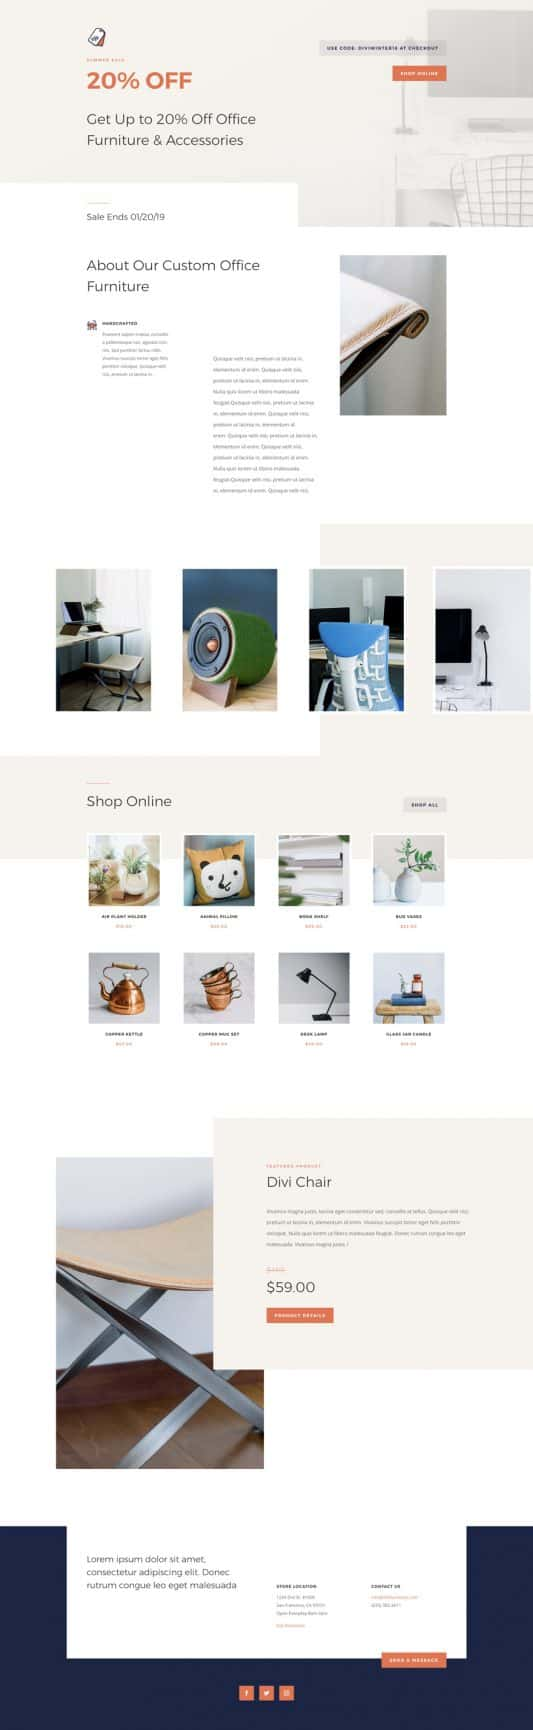 Furniture Store Sale Page Style 1